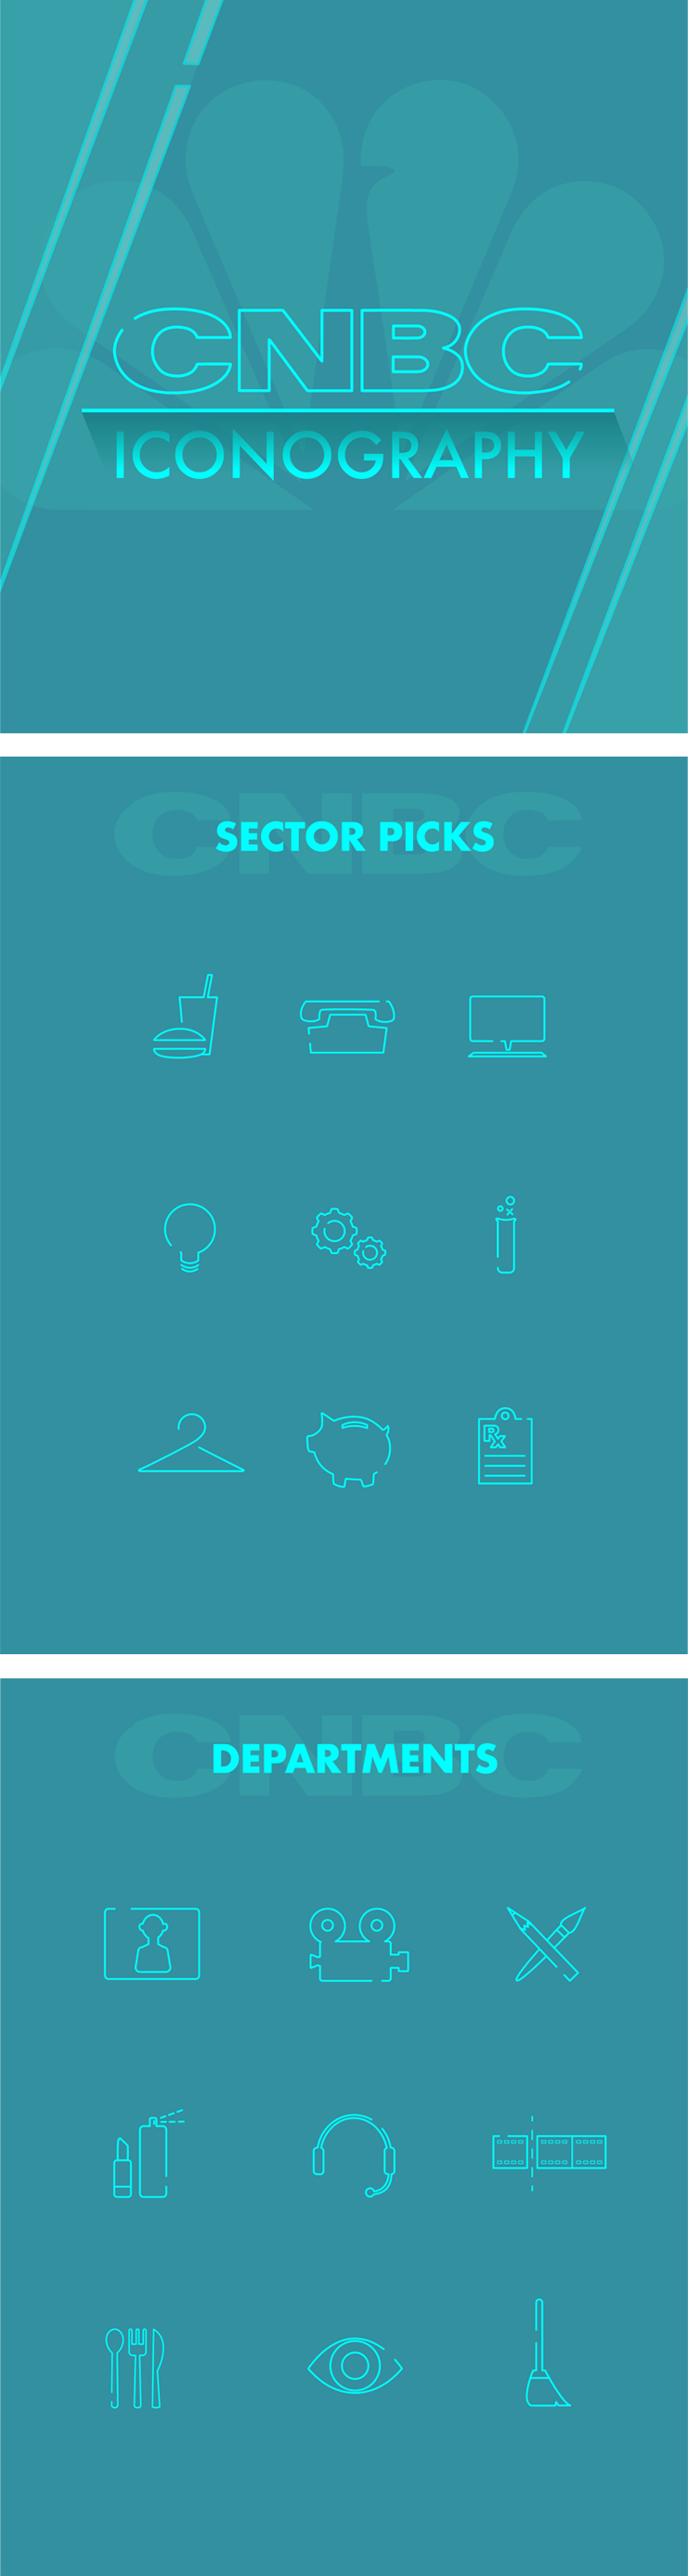 ICONS_layout.png